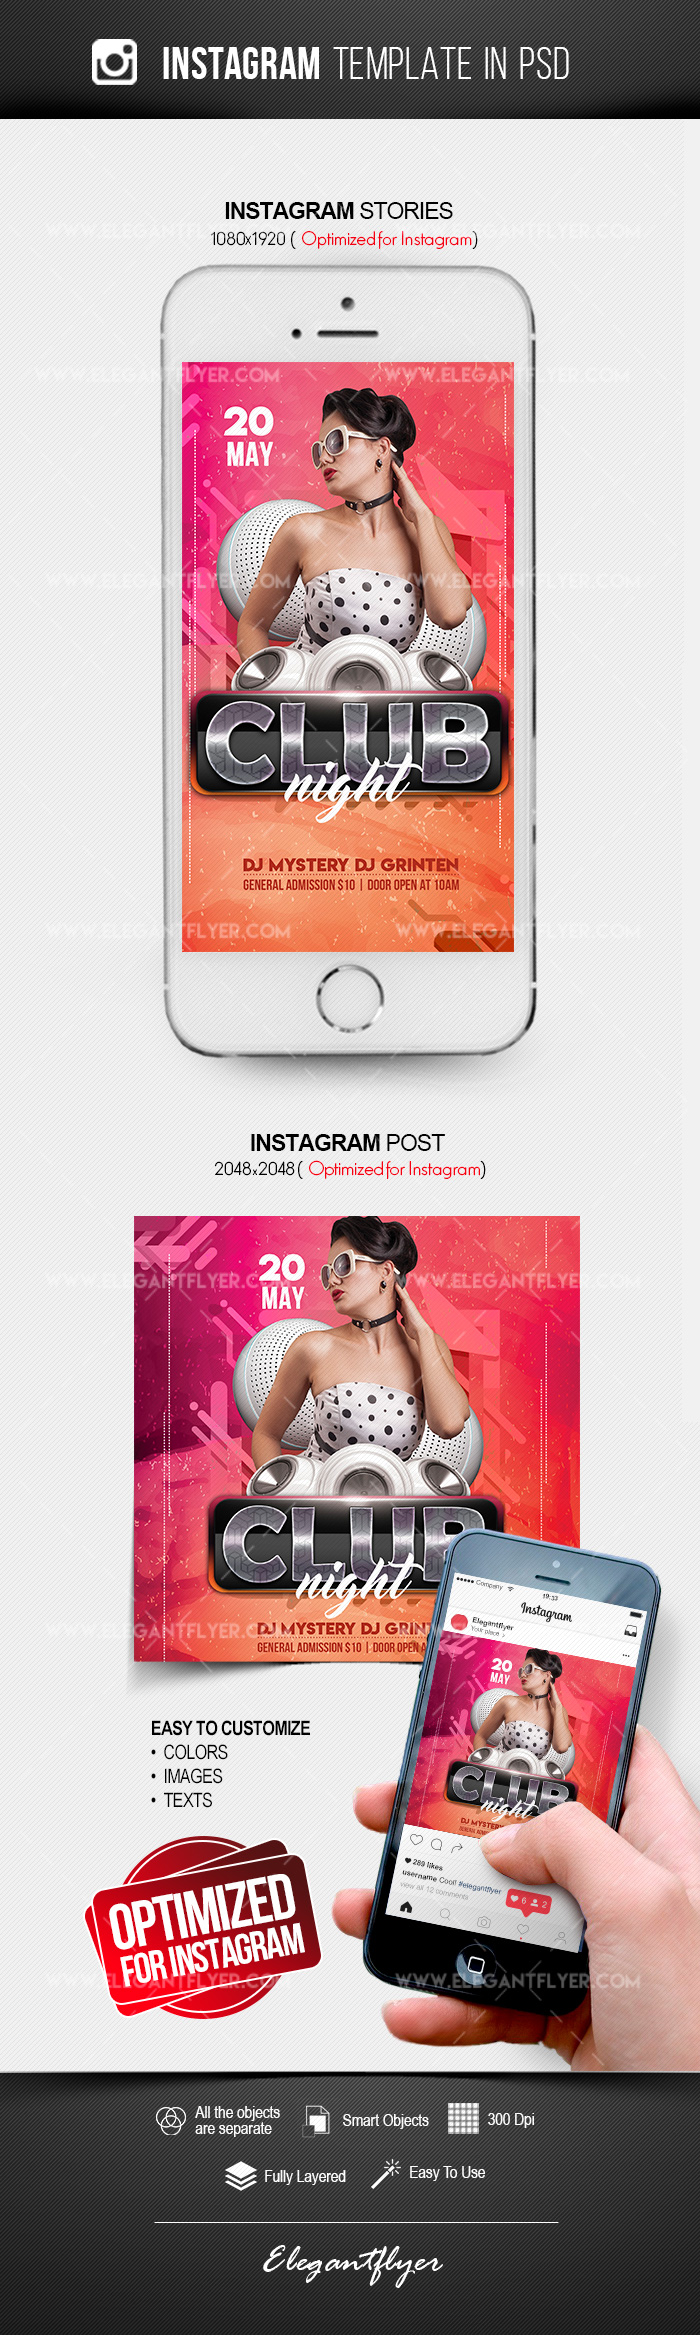 Club Night – Free Instagram Stories Template in PSD + Post Templates